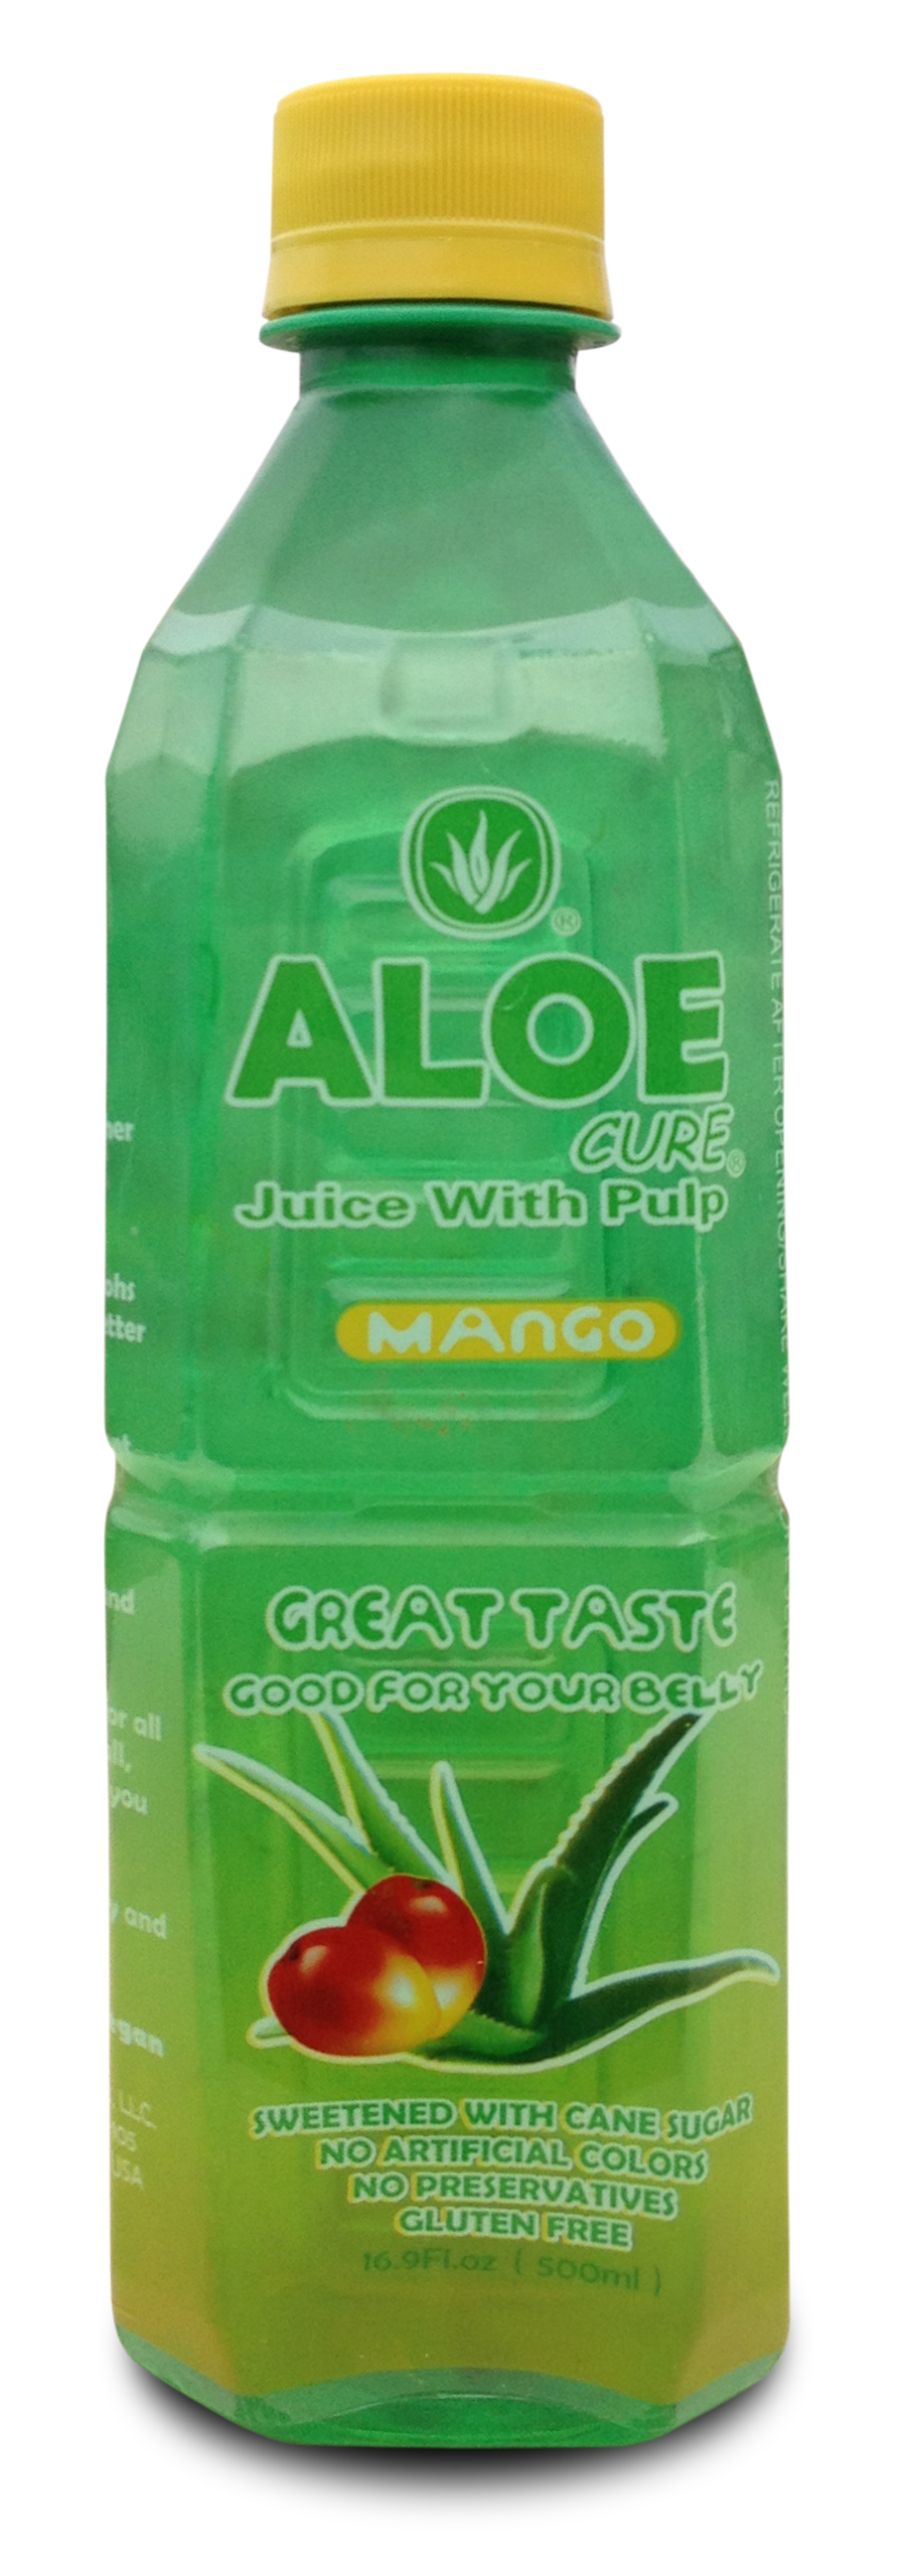 aloe vera feuilles boisson 500 ml frais aloe vera jus. Black Bedroom Furniture Sets. Home Design Ideas